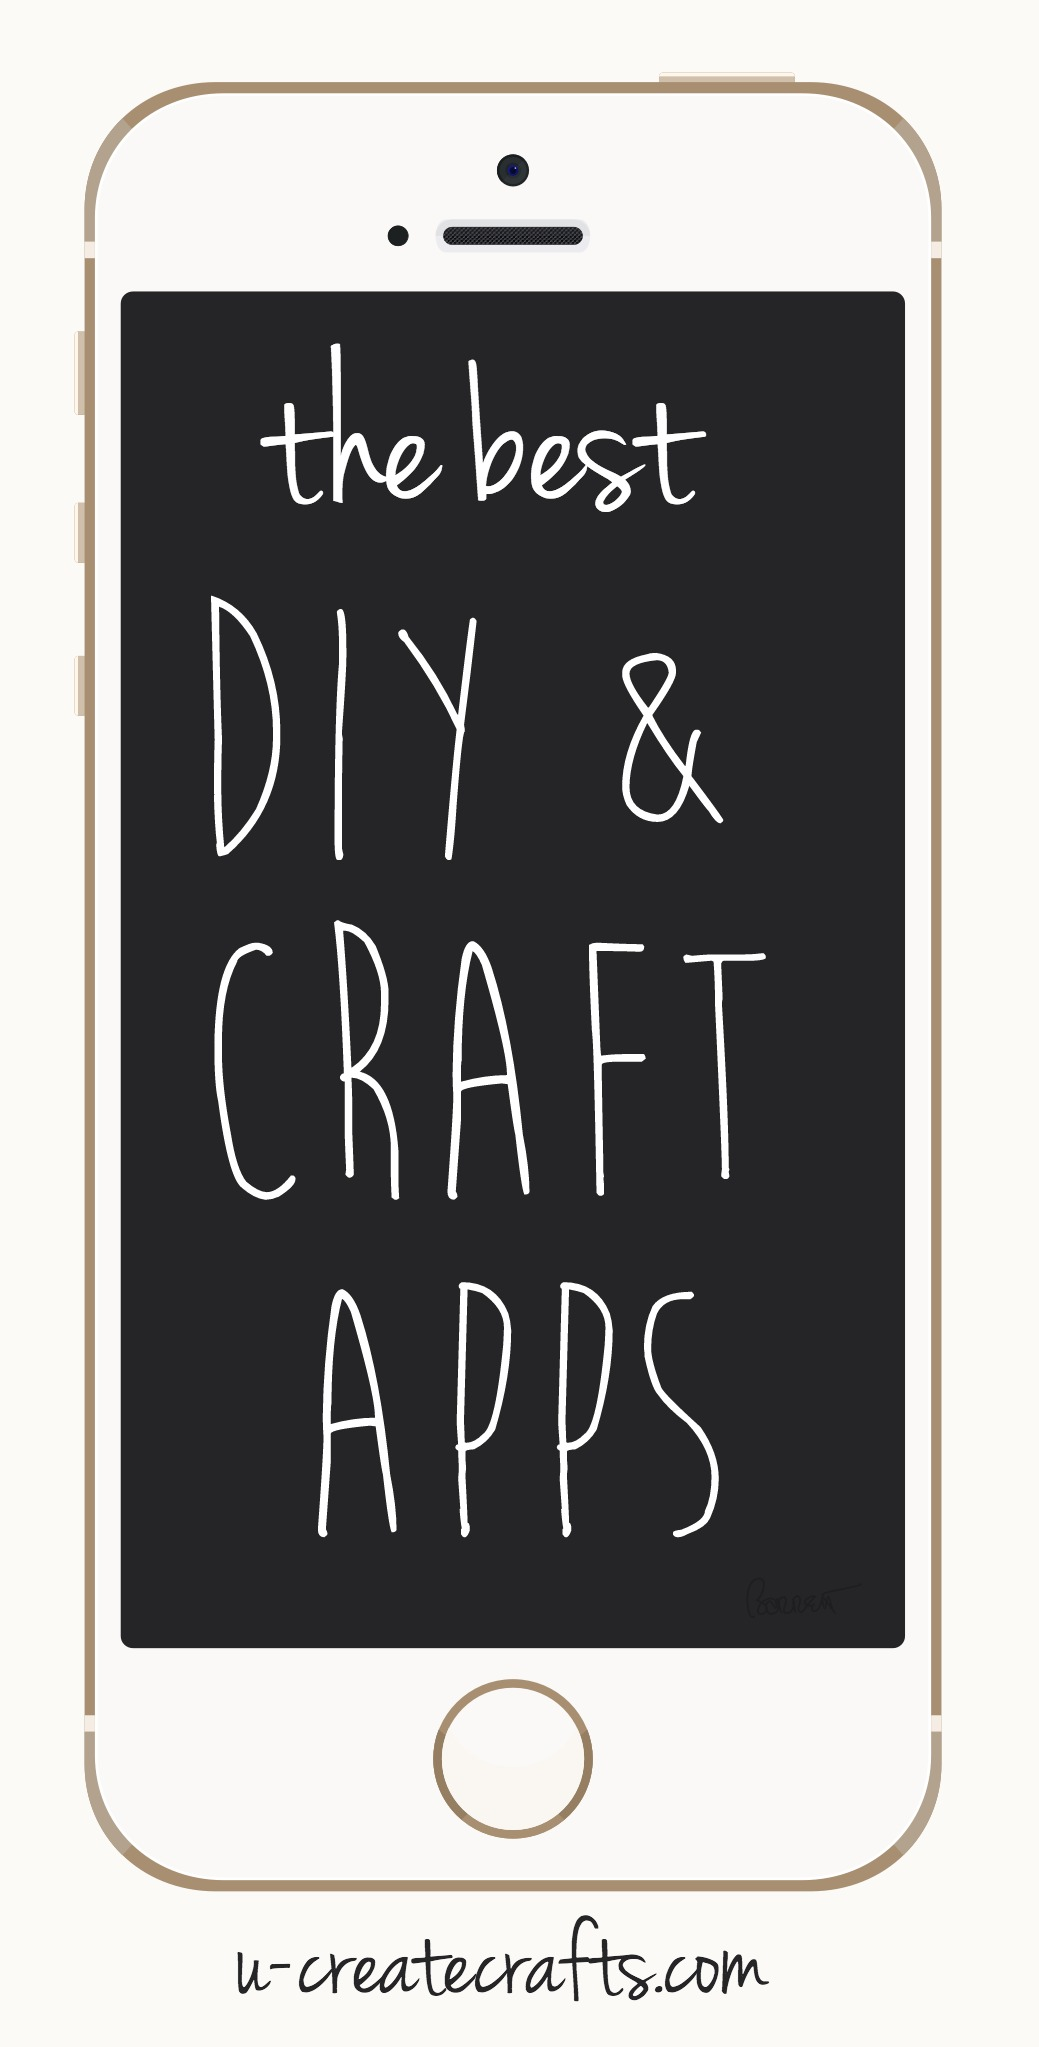 The Best DIY & Craft Apps - u-createcrafts.com